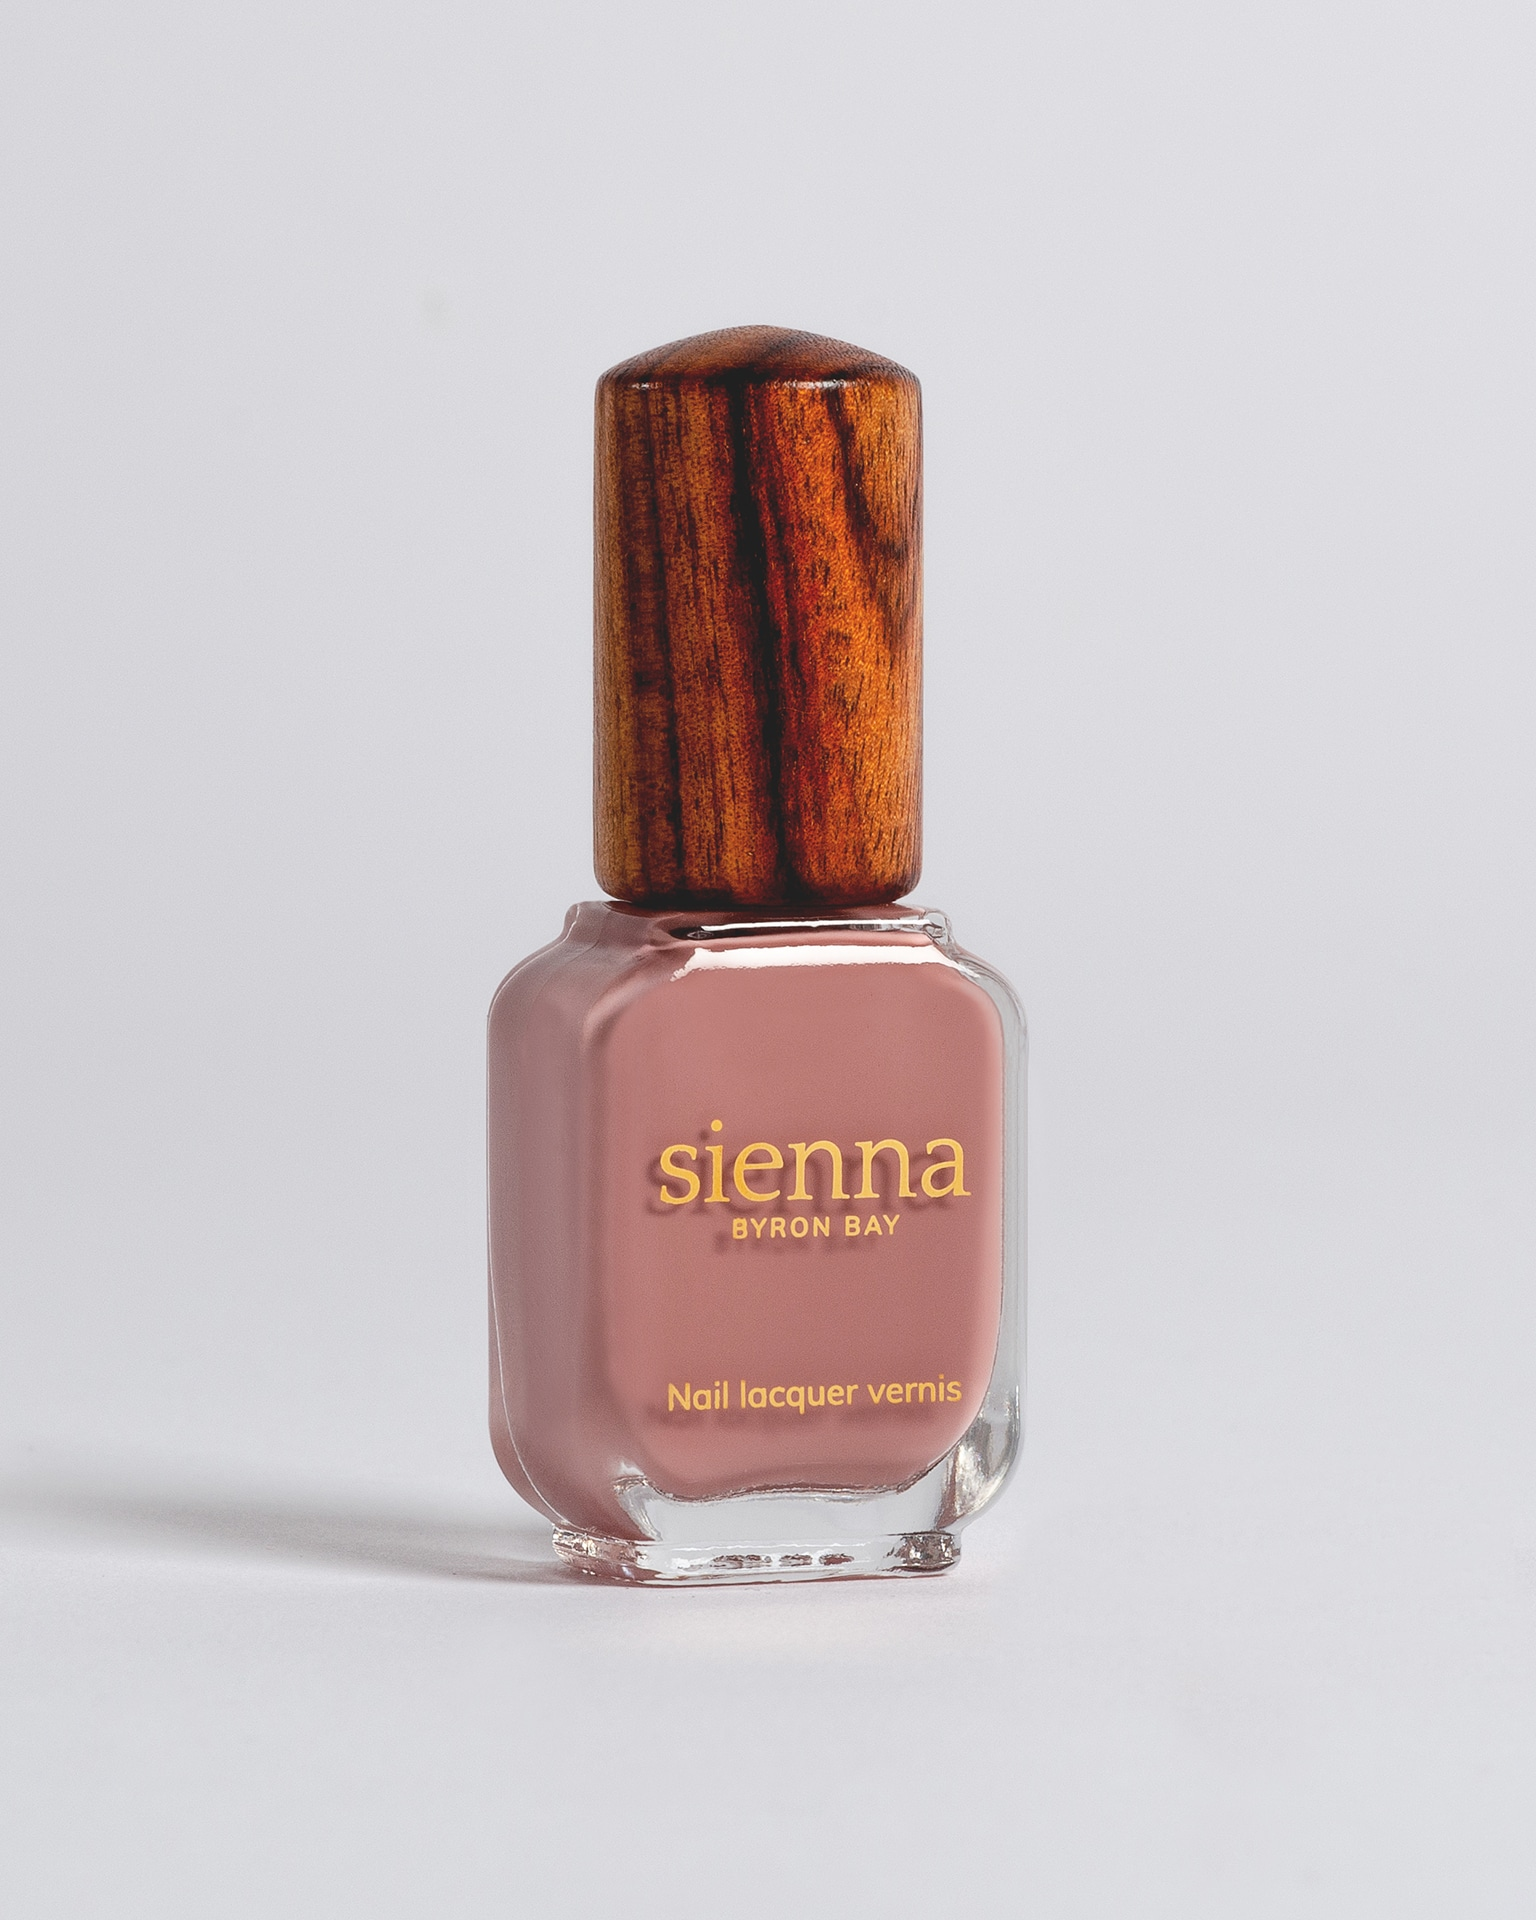 dusty mauve nail polish bottle with timber cap by sienna